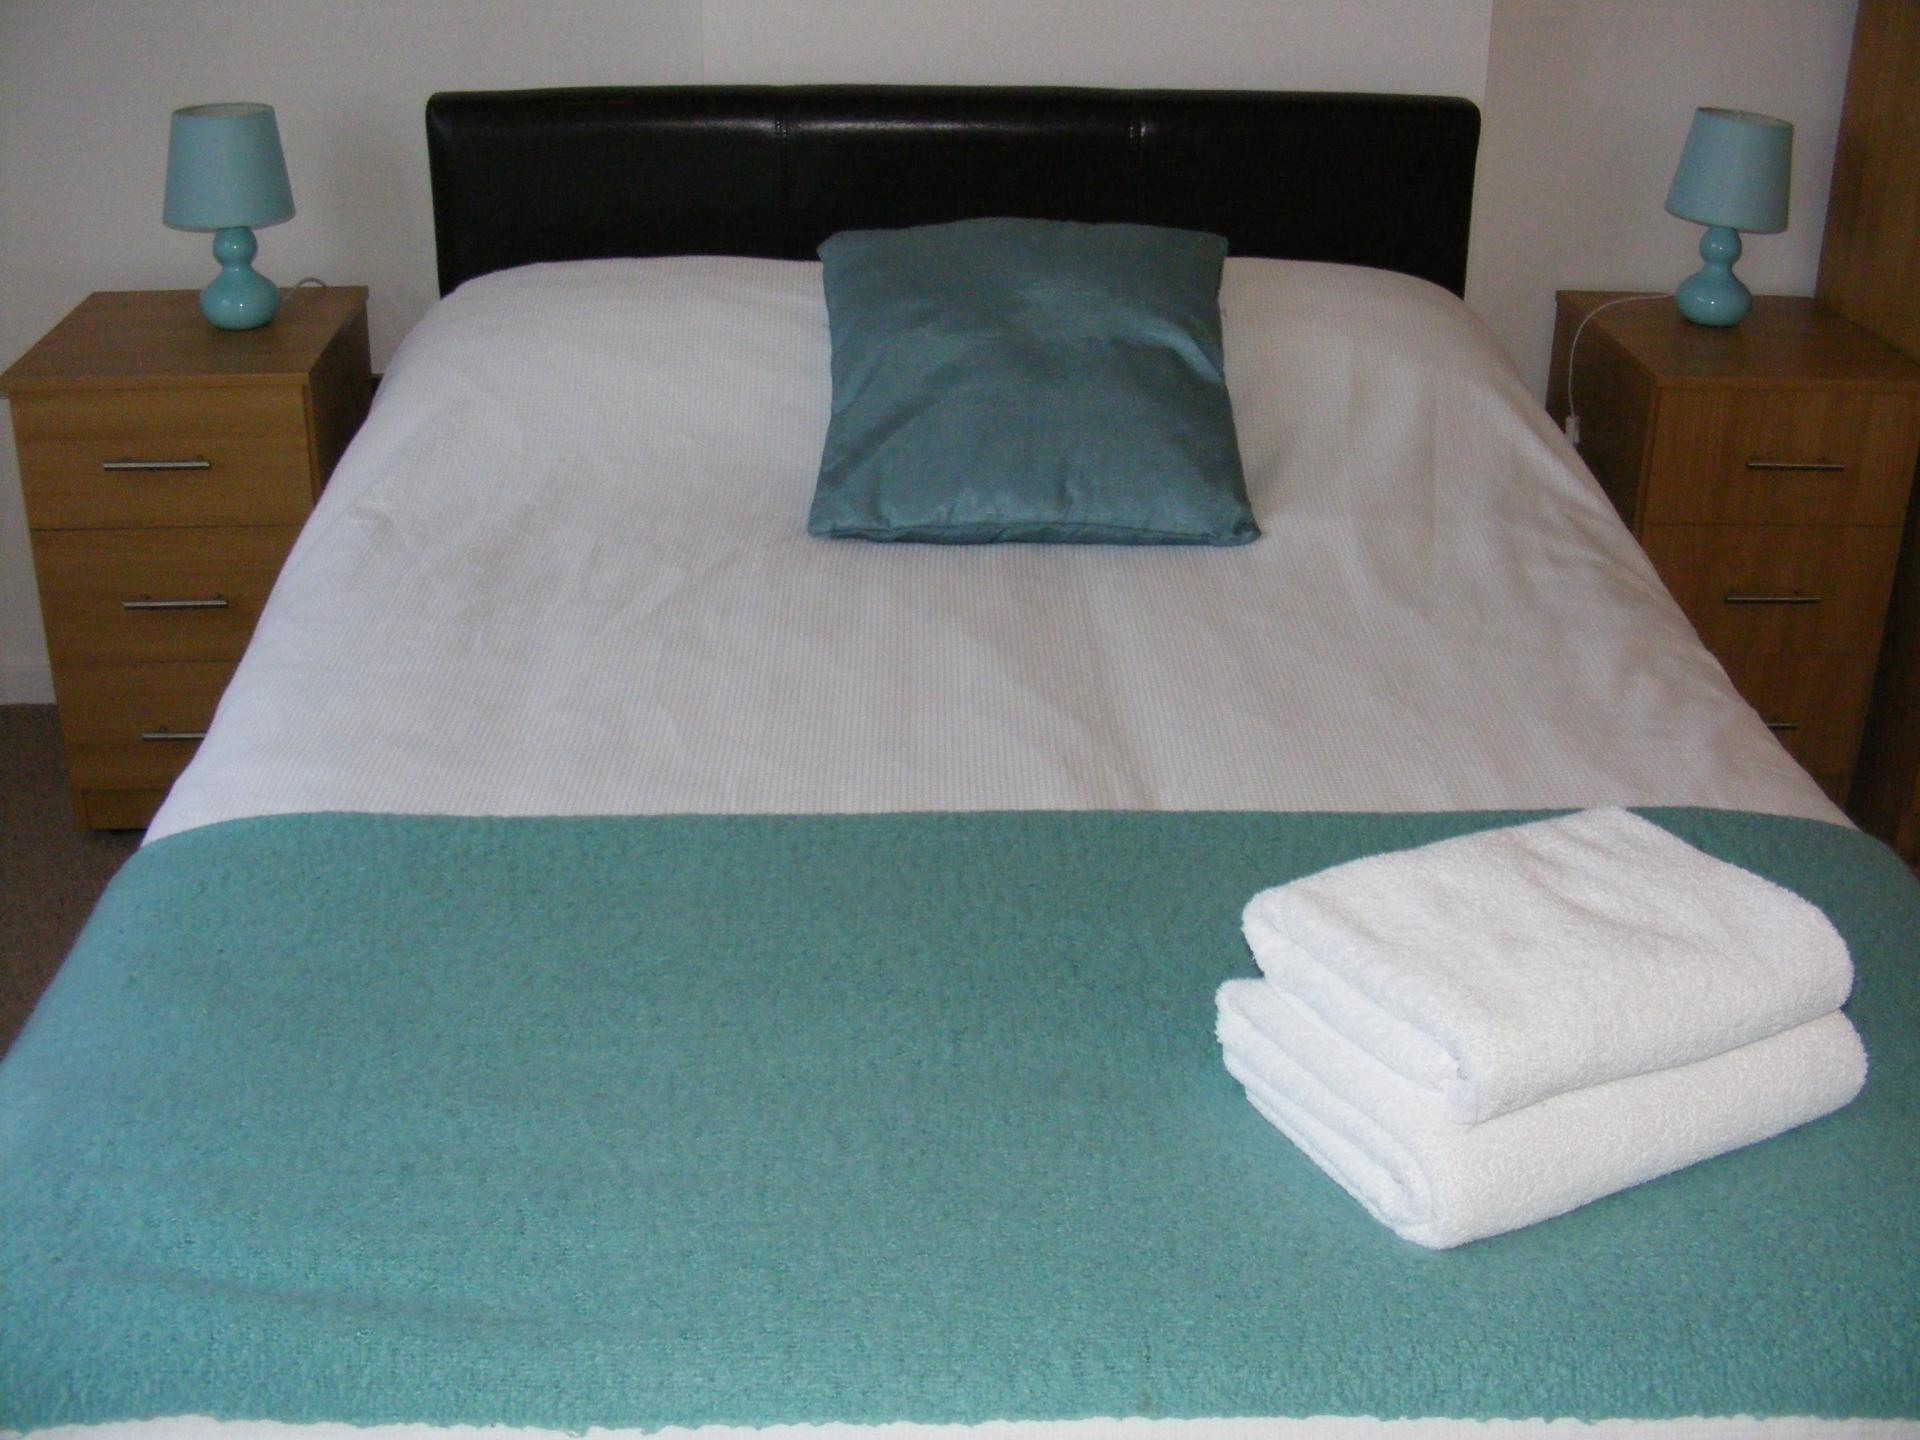 Bed at Baystays Apartments, Centre, Swansea - Citybase Apartments